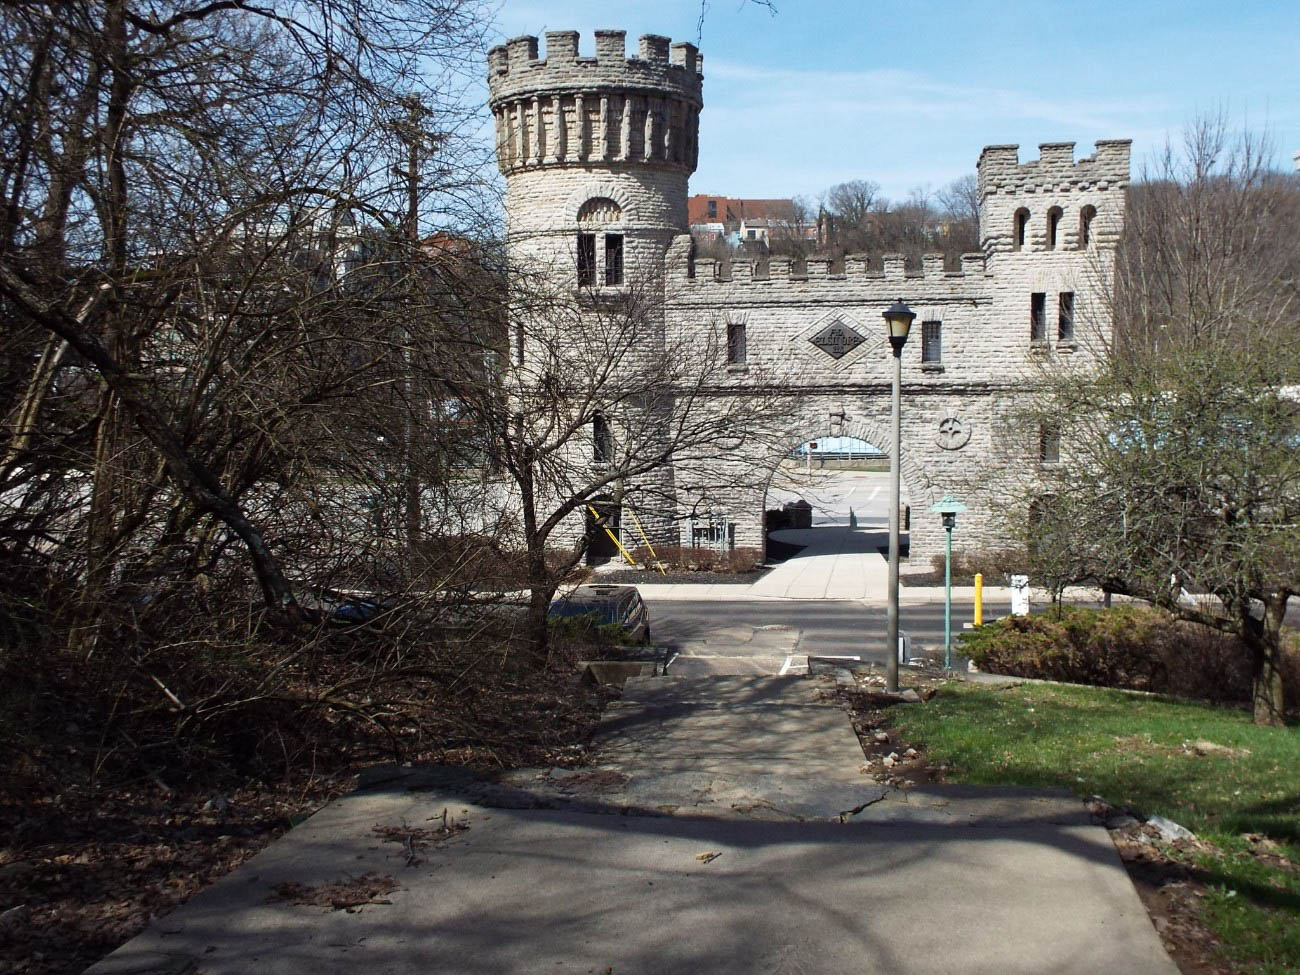 Elsinore Arch cost $15,000 to build and was intended to be a grand entrance to Eden Park and the Cincinnati Art Museum. While the stone stairs leading up to the park remain, once automobiles became more popular, the stairs lost much of their necessity. / Image: Amy Bauer // Published: 4.12.19